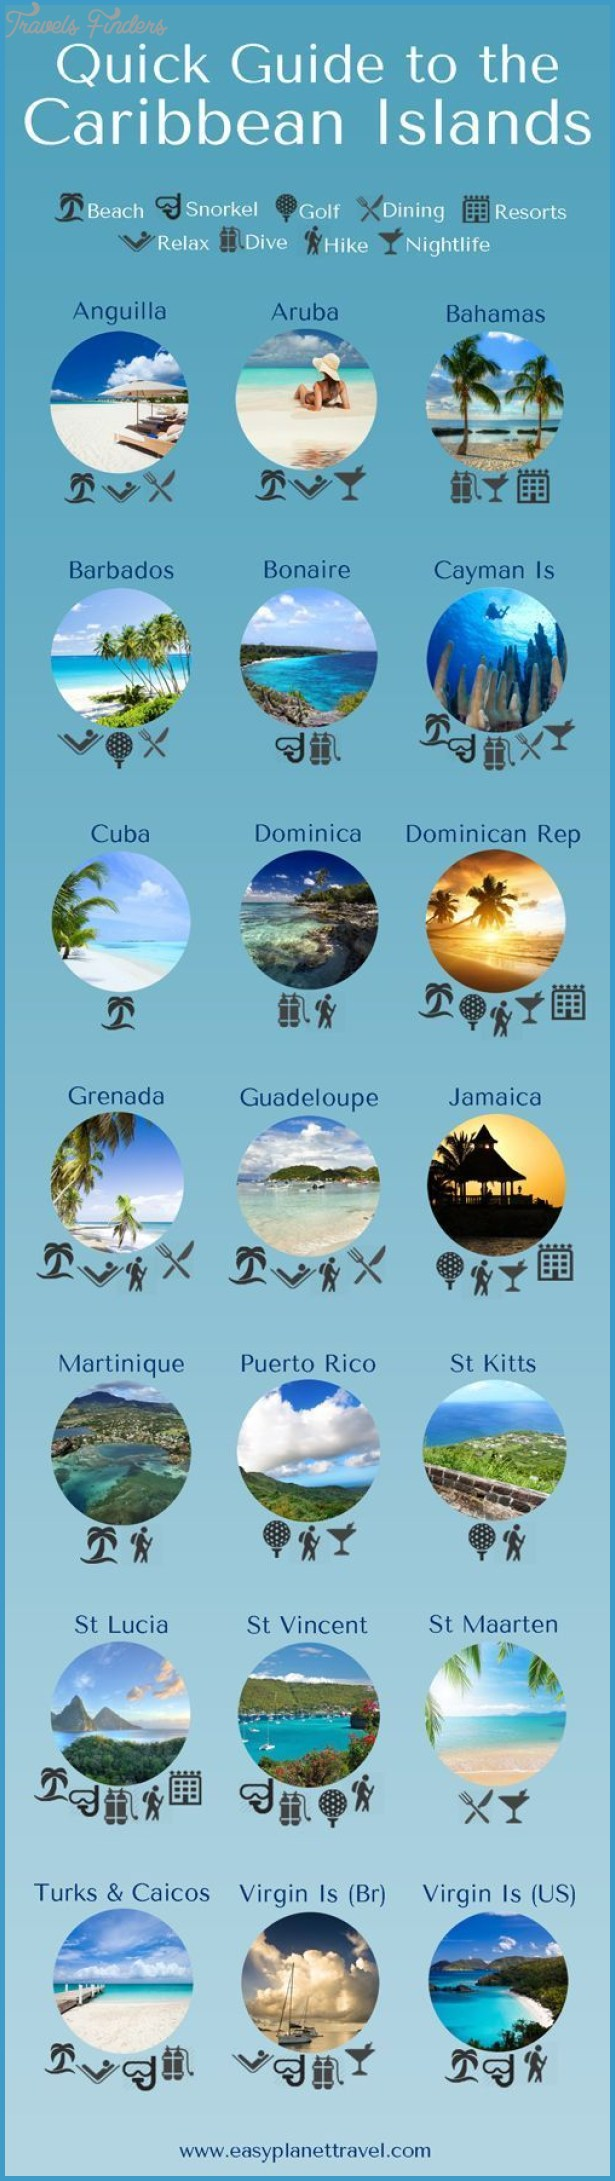 Thinking of Taking a Cruise? 4 Destinations You Can't Miss_4.jpg